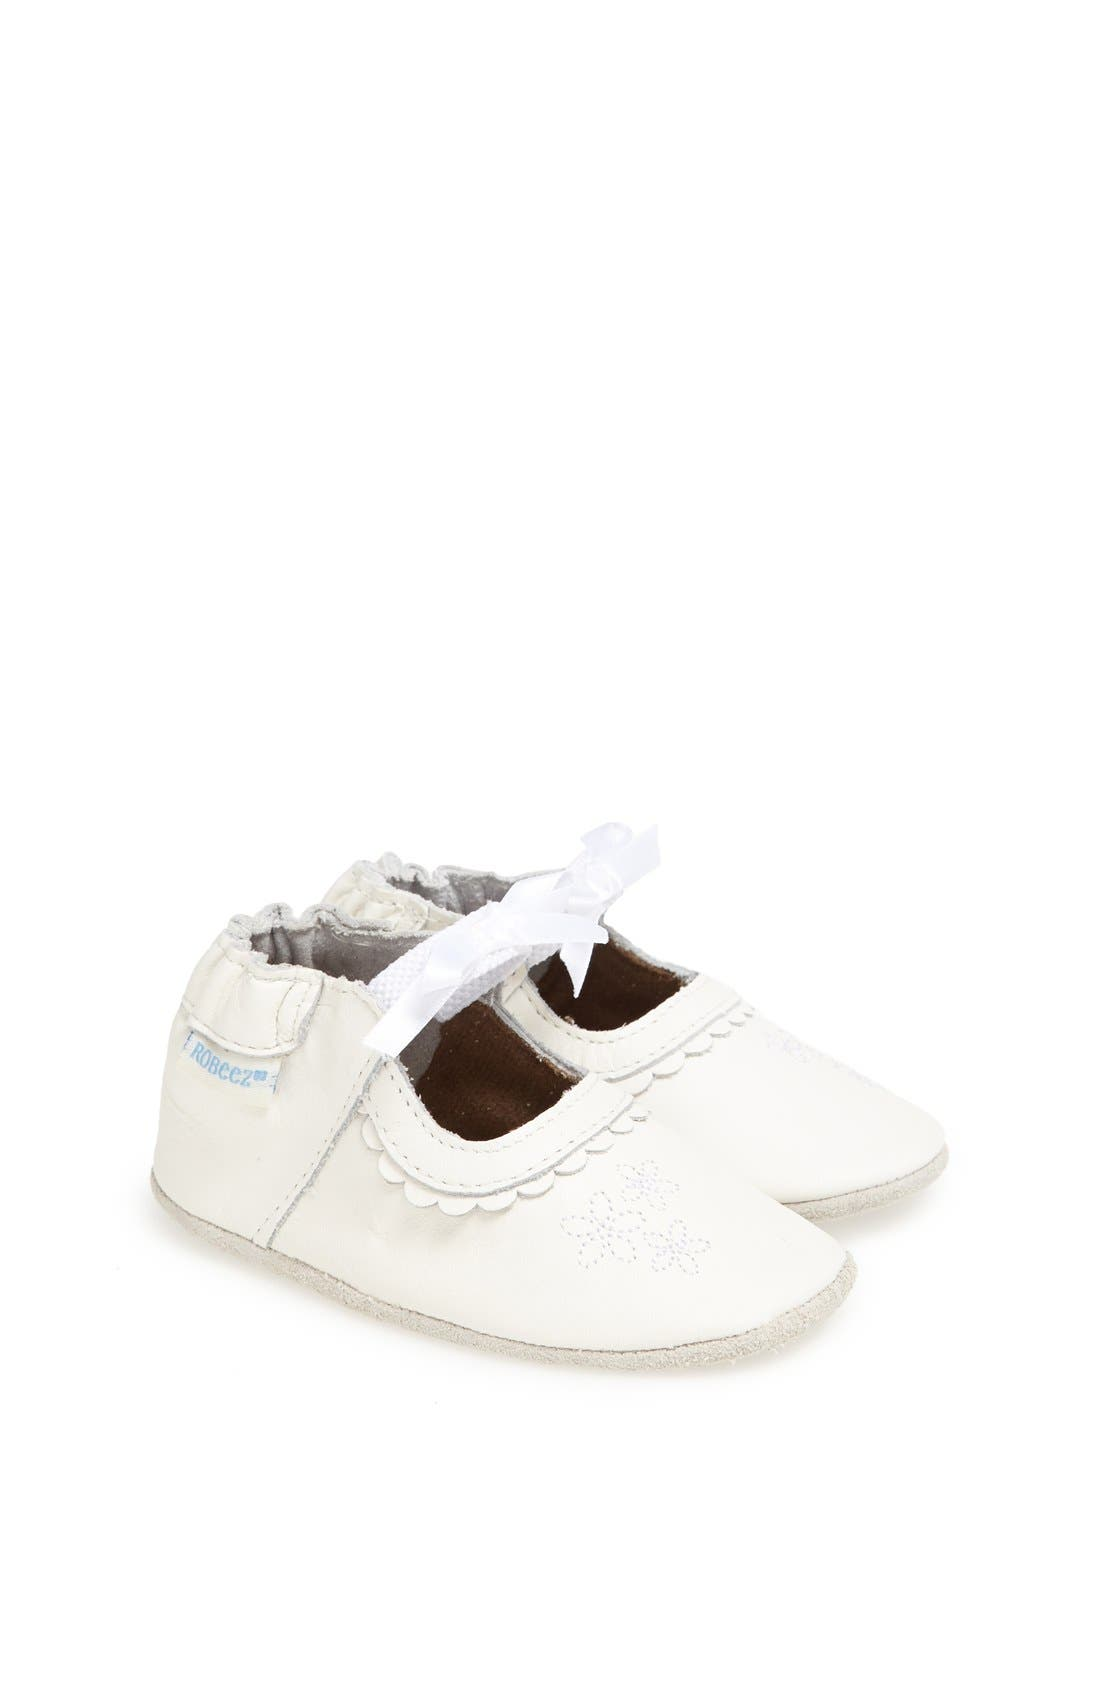 Alternate Image 1 Selected - Robeez® 'Special Occasion' Crib Shoe (Baby & Walker)